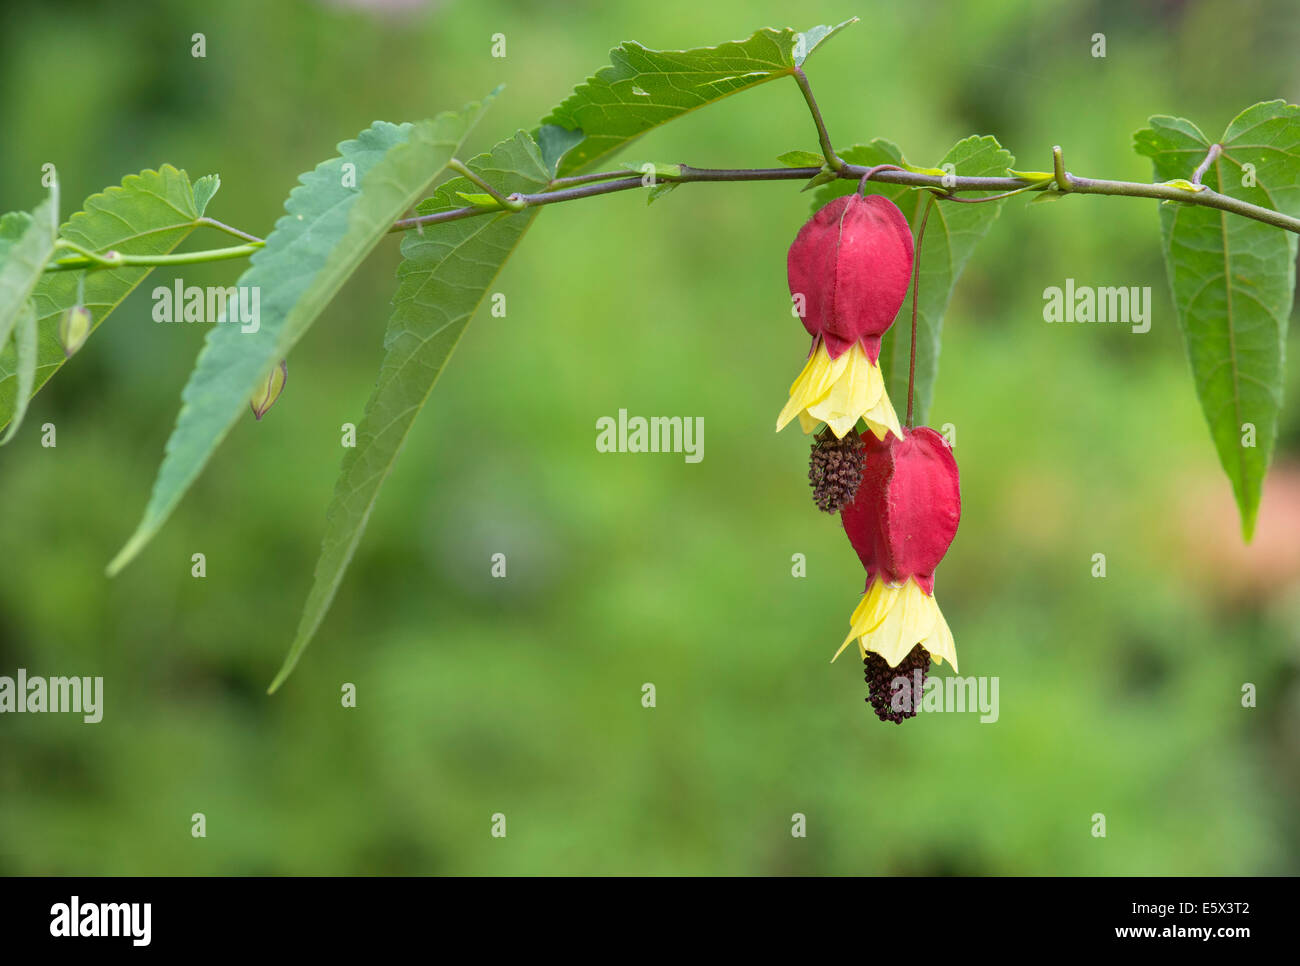 Abutilon megapotamicum. Trailing abutilon - Stock Image